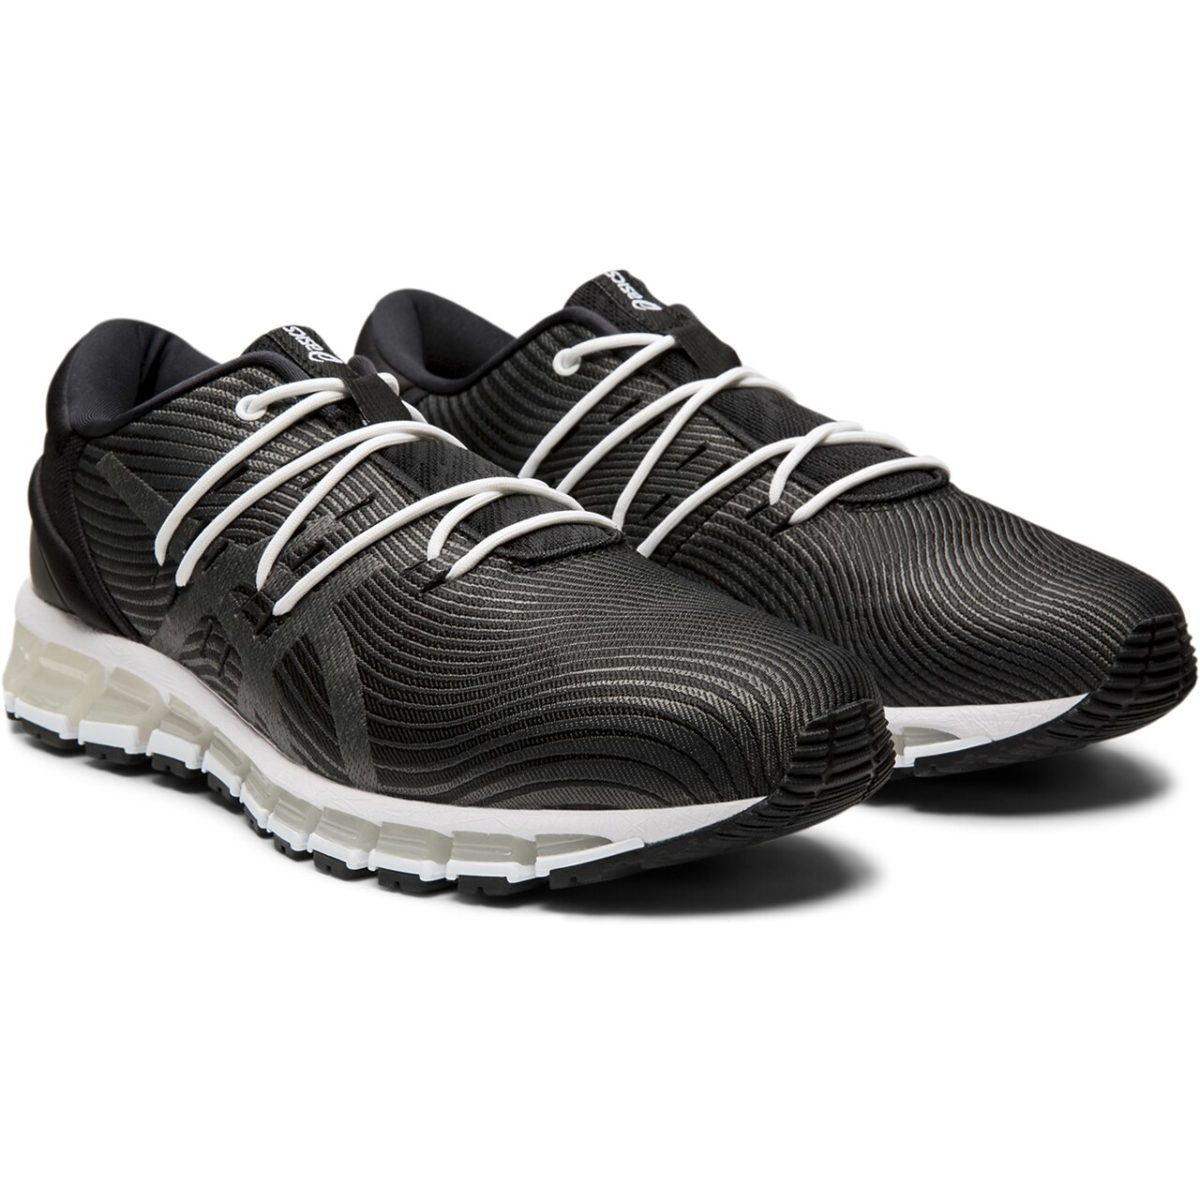 Asics Gel-Quantum 360 4 M 2020 (Black/Dark Grey)